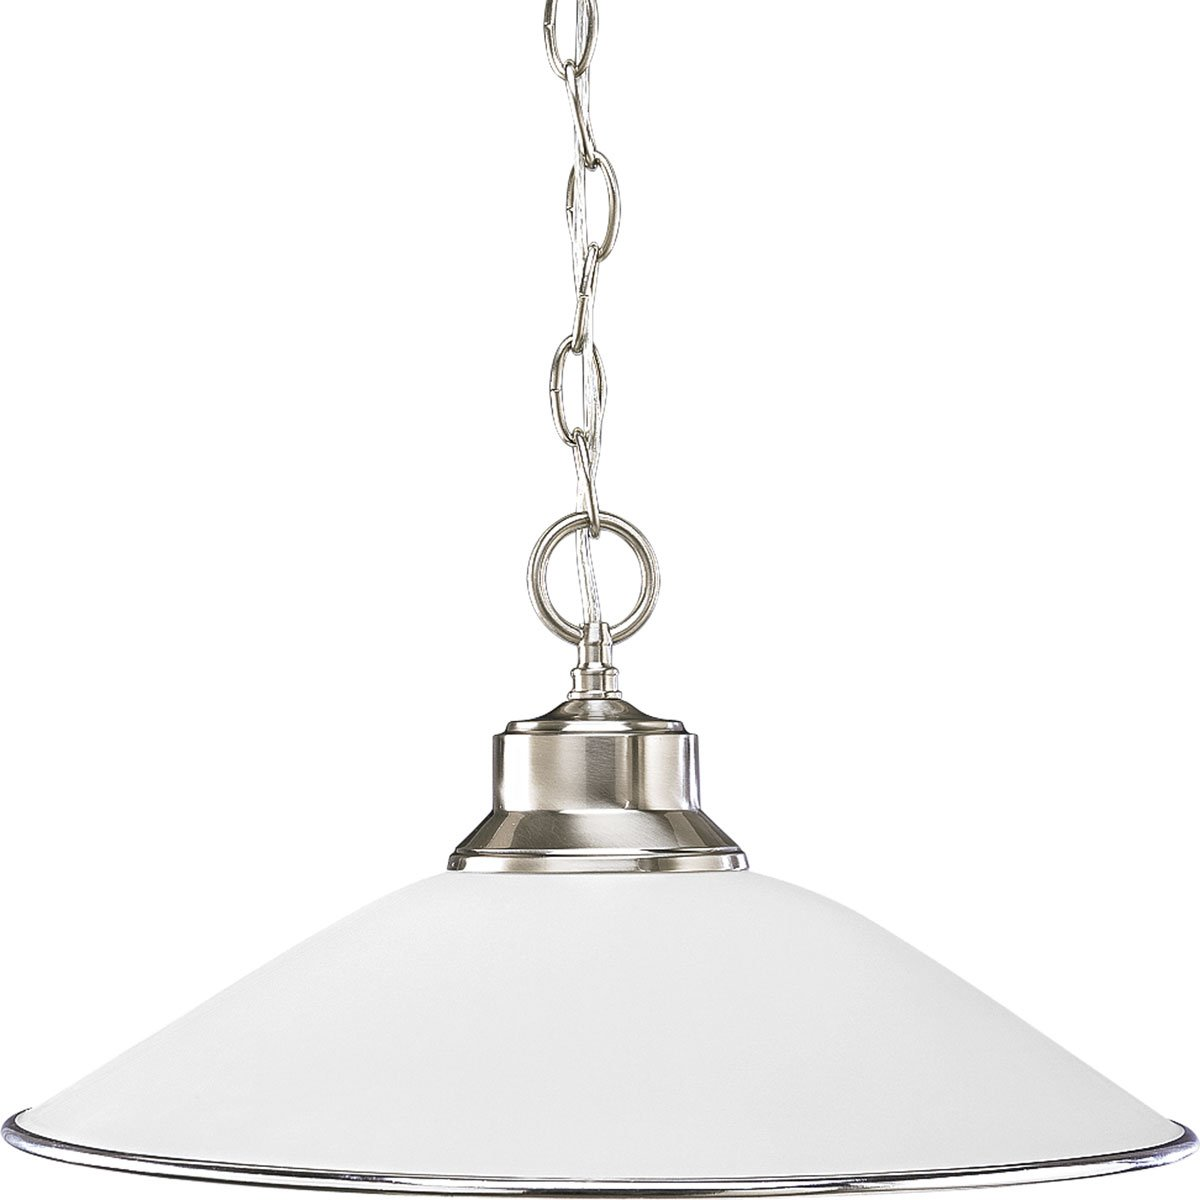 Progress Lighting P5013-09 1-Light Chain-Hung Pendant with Satin Opal Glass and Accent Ring, Brushed Nickel